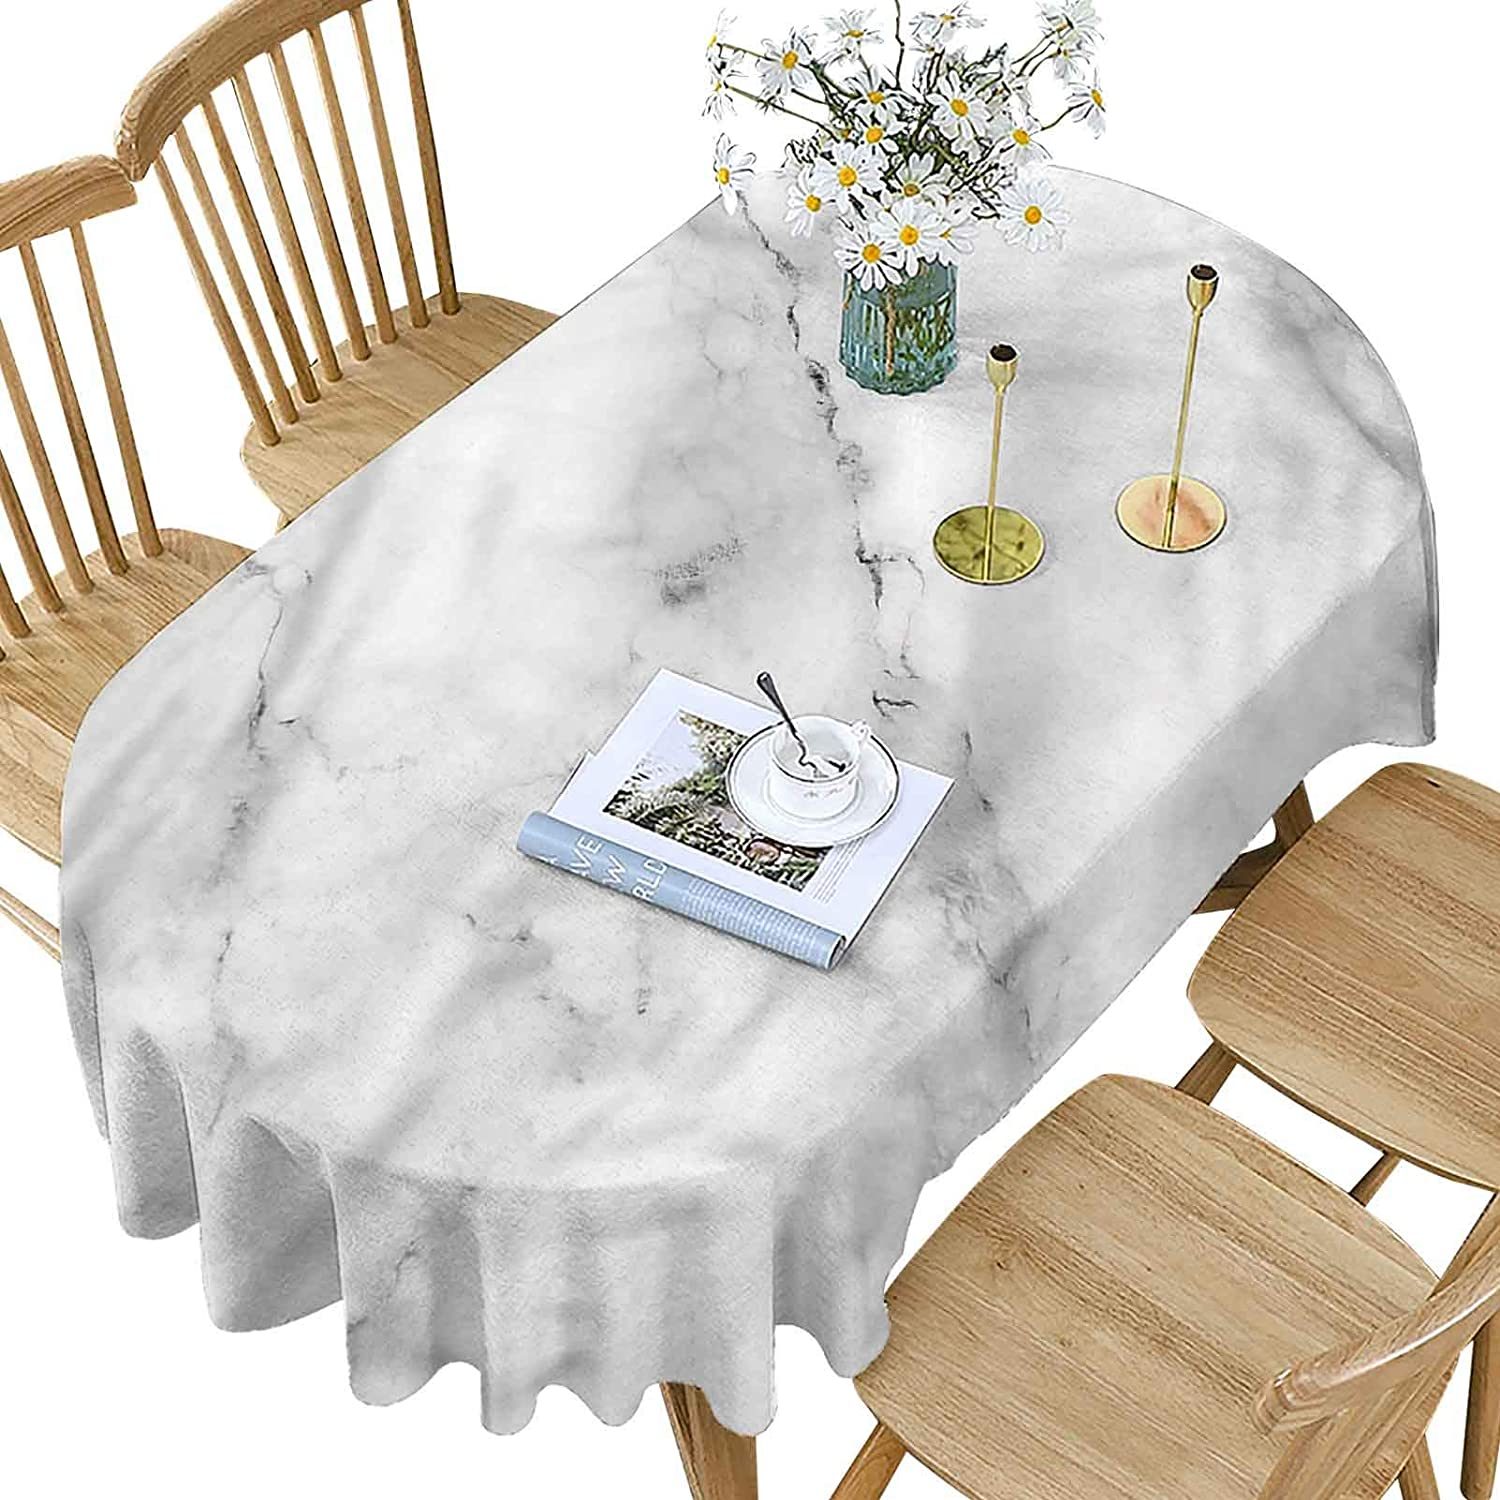 Marble Polyester Oval Tablecloth Houston Mall Granite Manufacturer regenerated product Surface Pattern P Motif